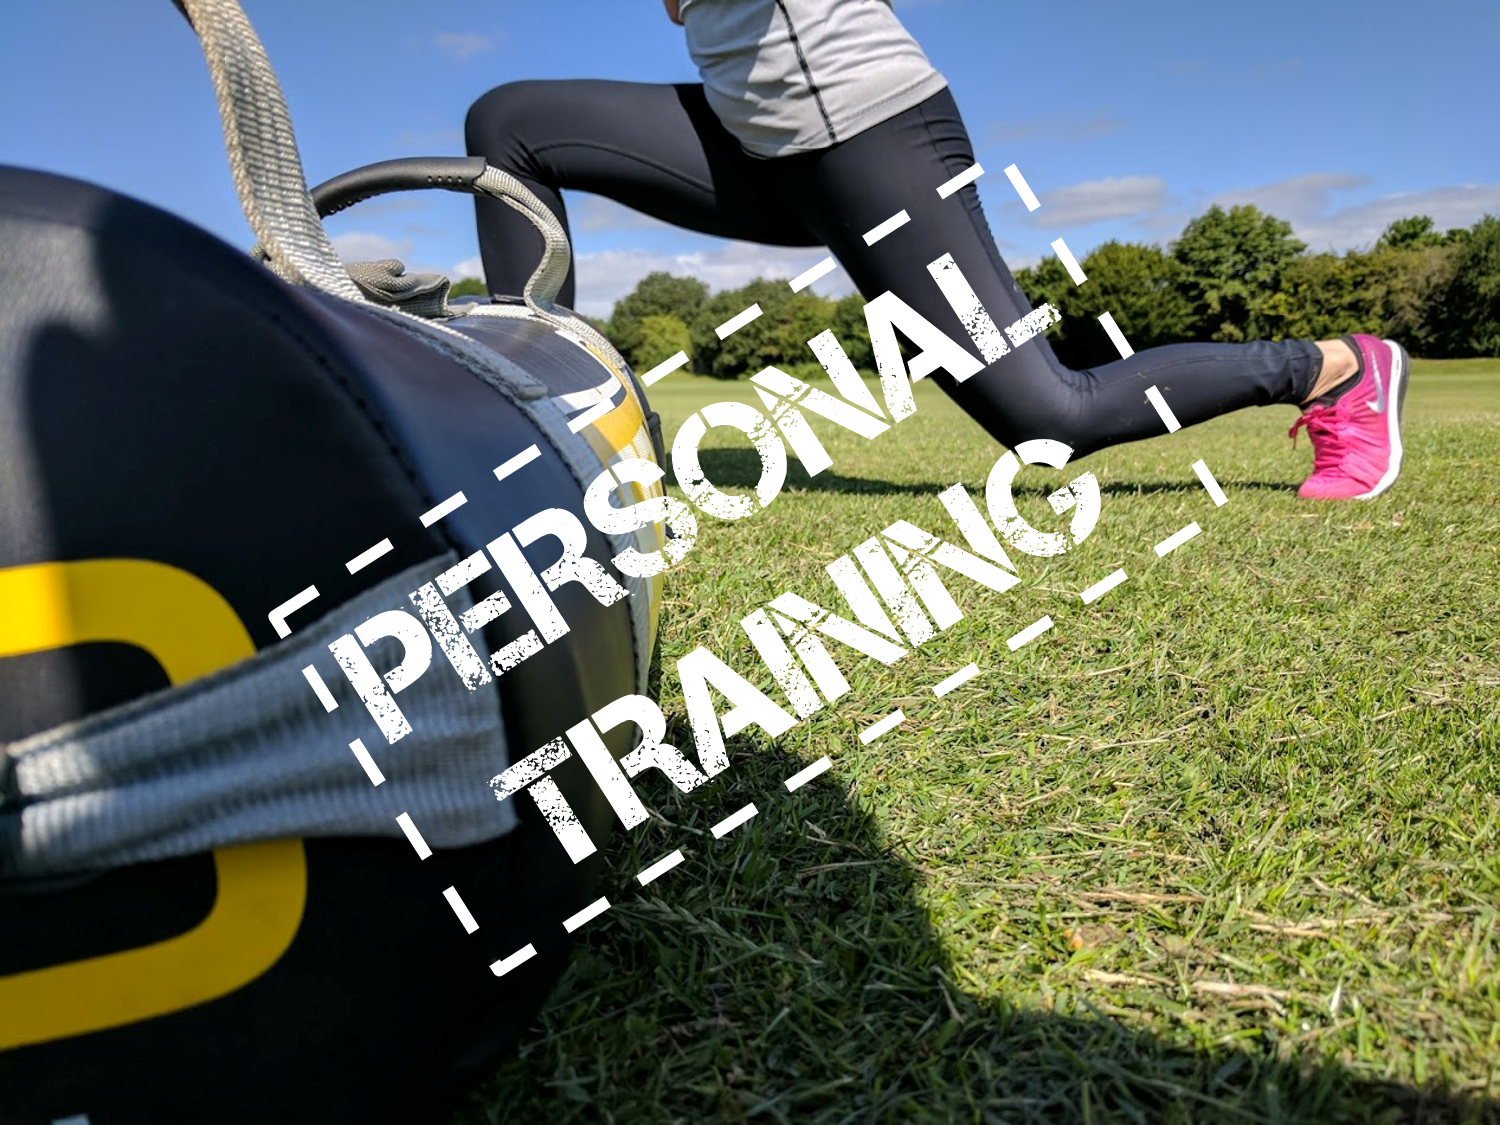 Corps Fitness Personal Training